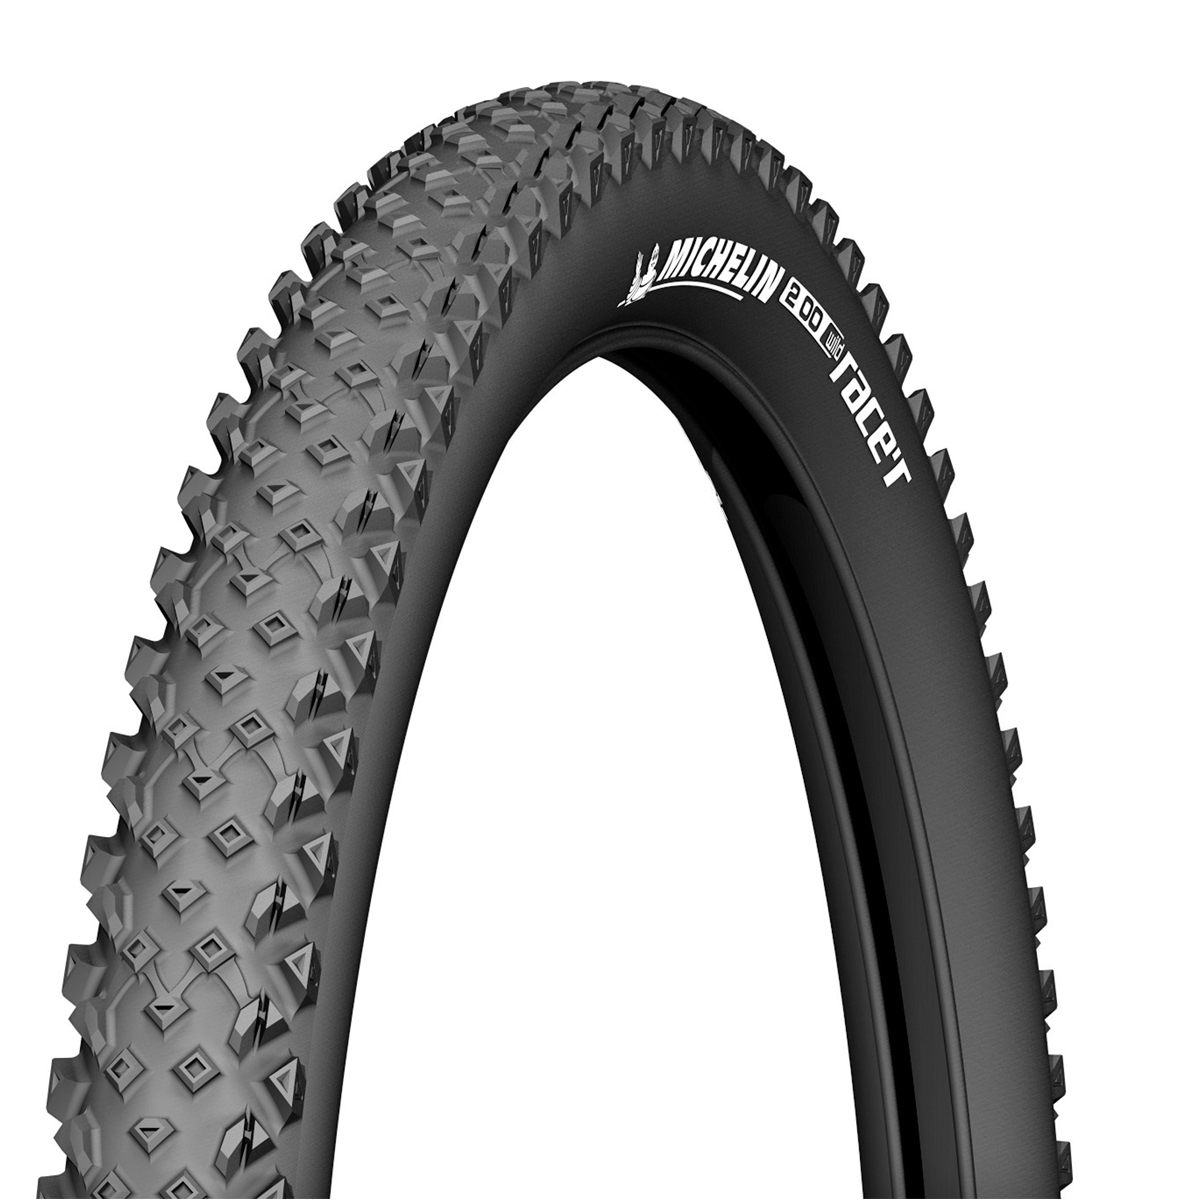 Pneu 26 x 2.10 Michelin Wild Race'R (TS)